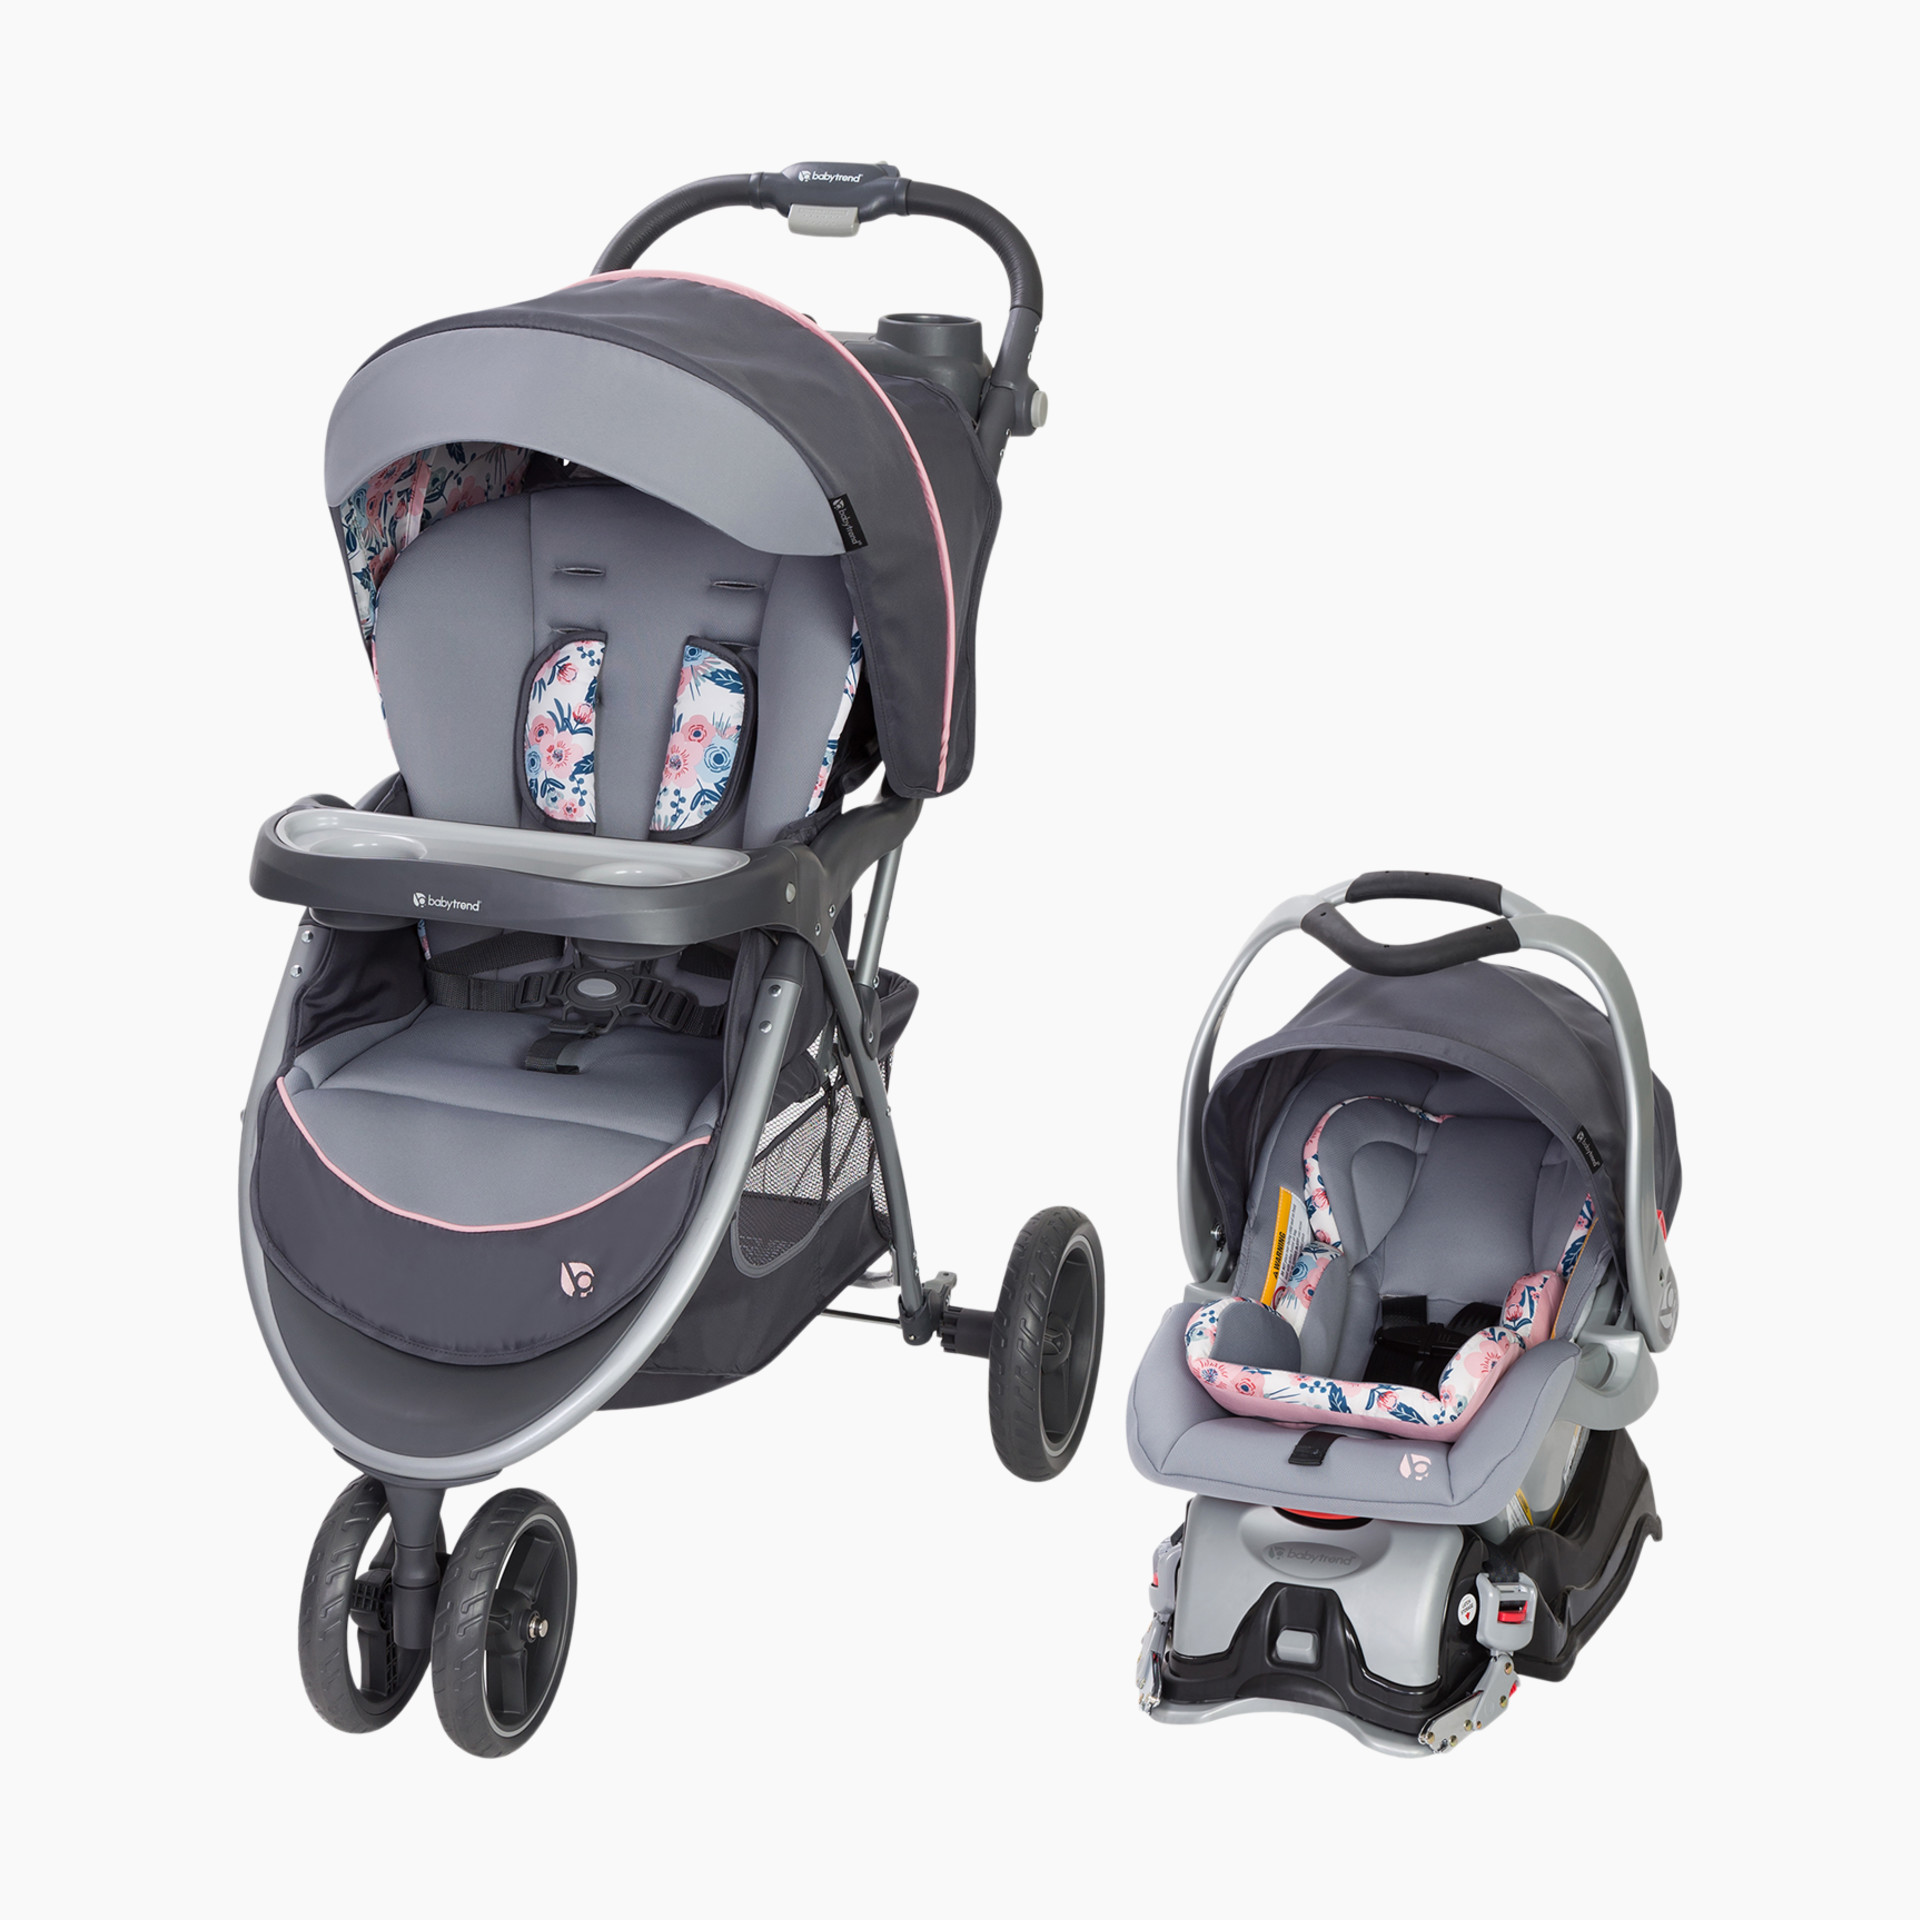 Baby Trend Skyview Plus Travel System Babylist Store